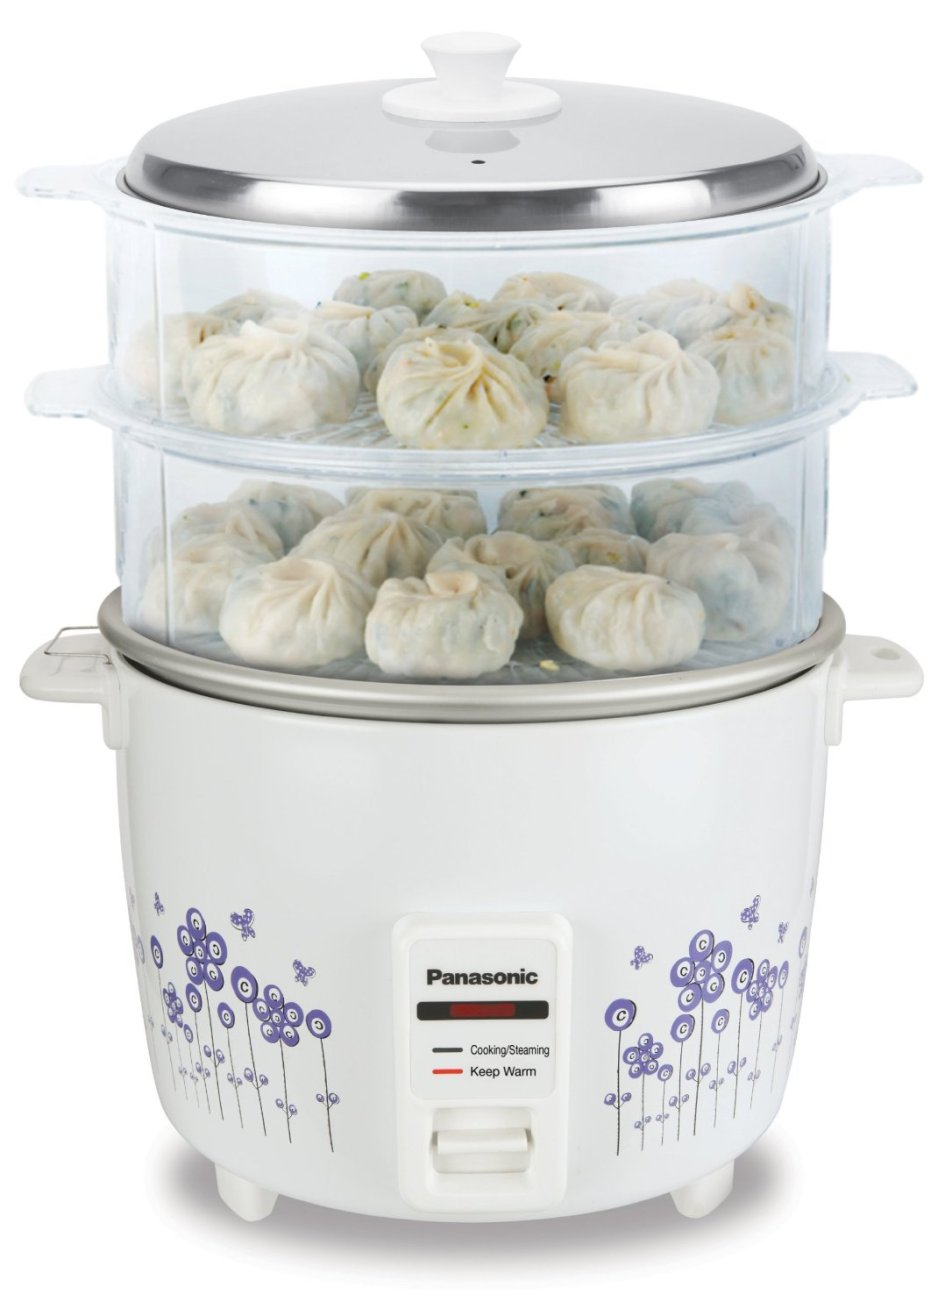 Tips-to-use-your-Panasonic-Electric-Rice-Cooker-Better